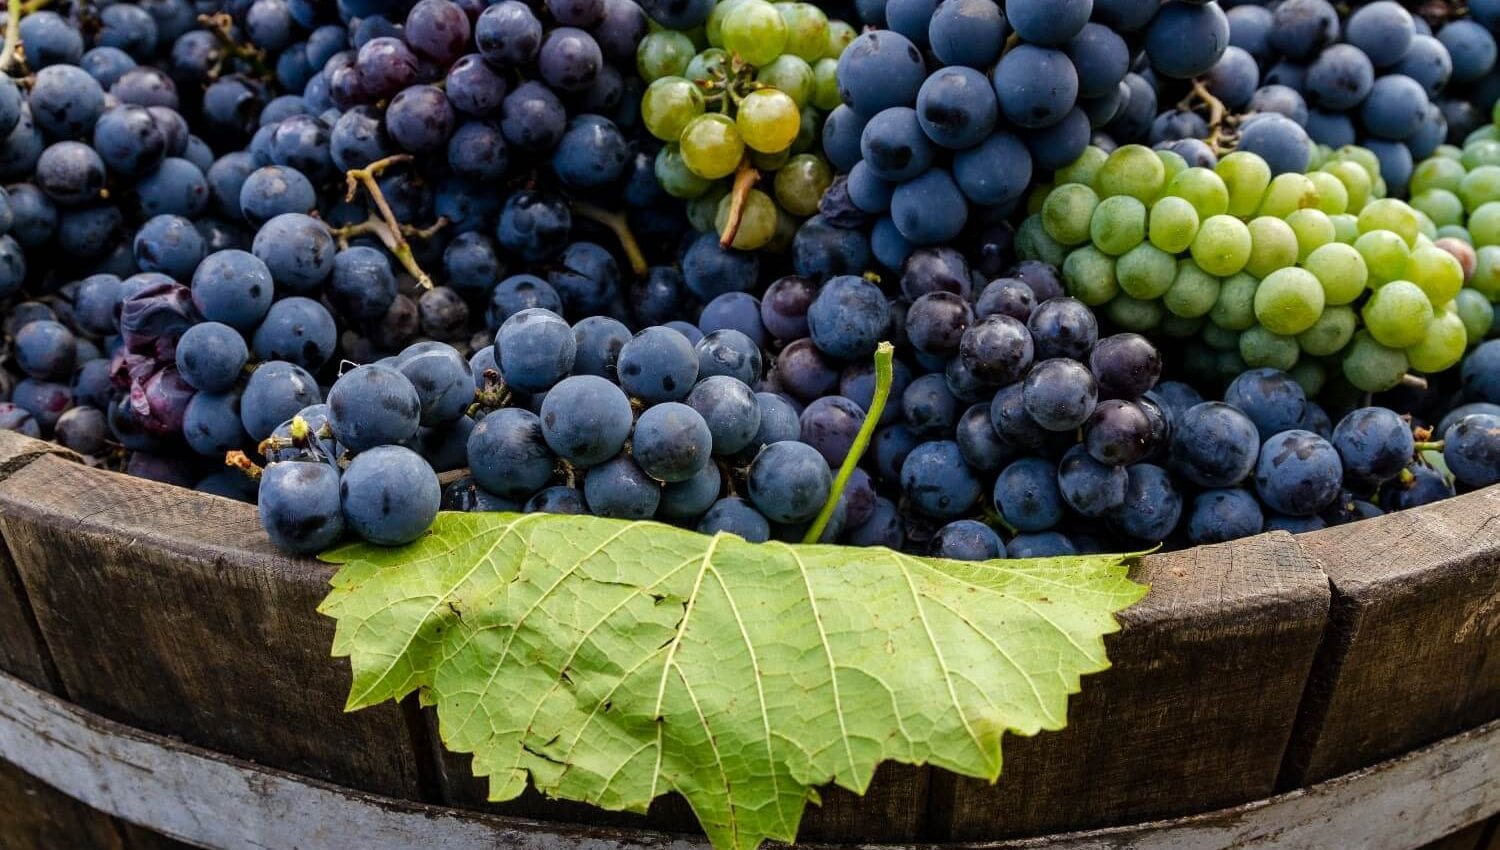 Crush wine grapes with your feet at the Calaveras Grape Stomp!